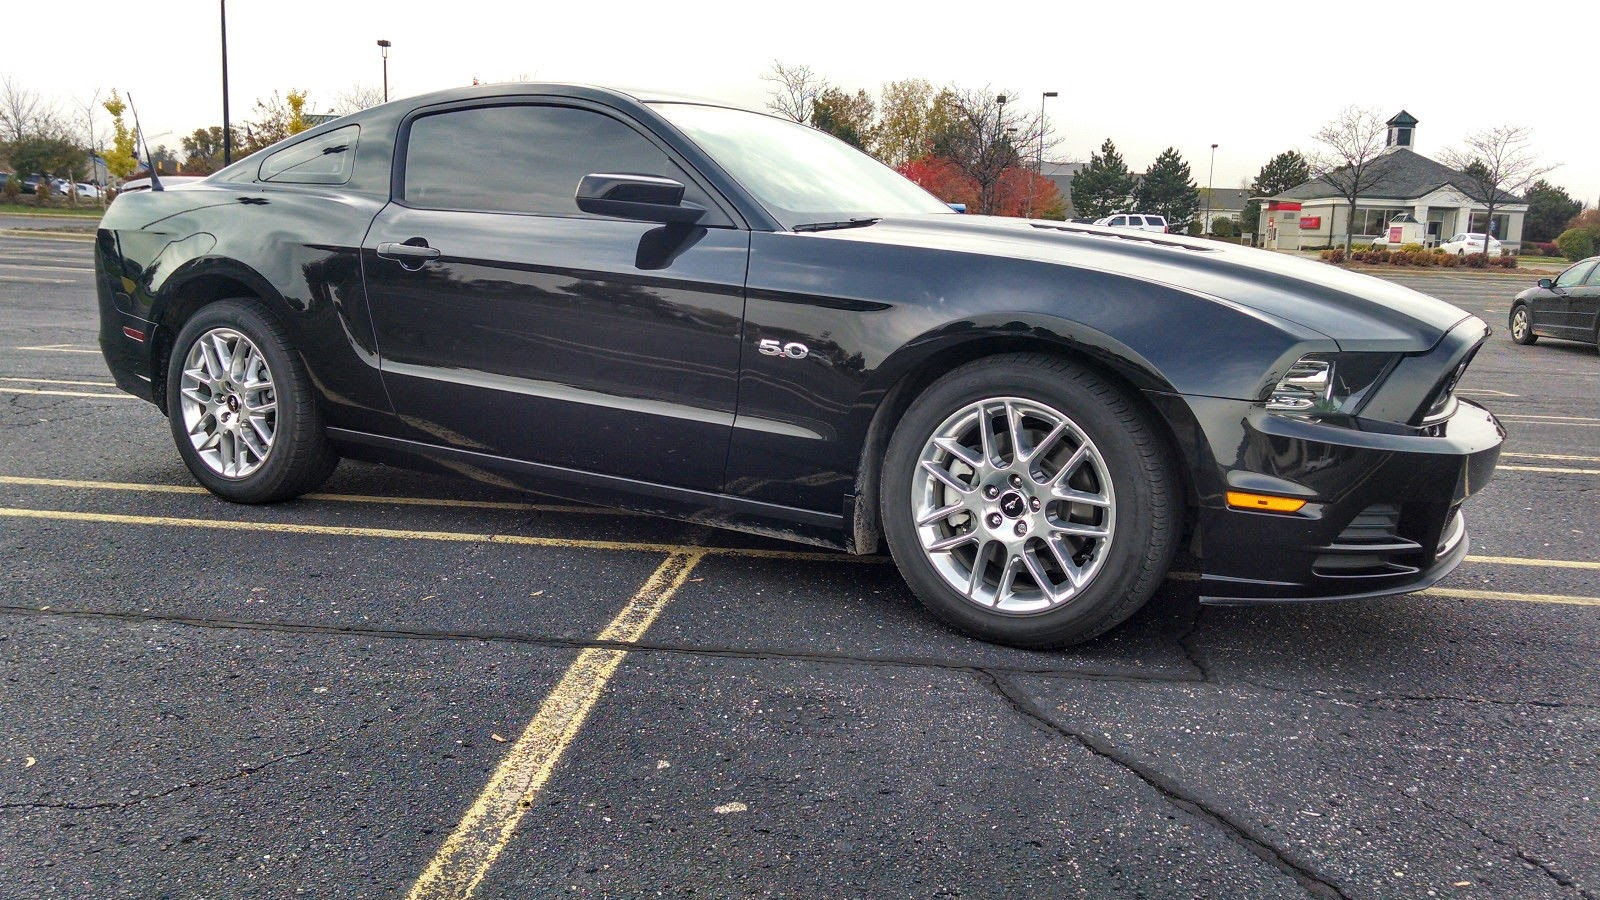 2013 Ford Mustang Gt Premium 5 0l 420 Hp For Sale American